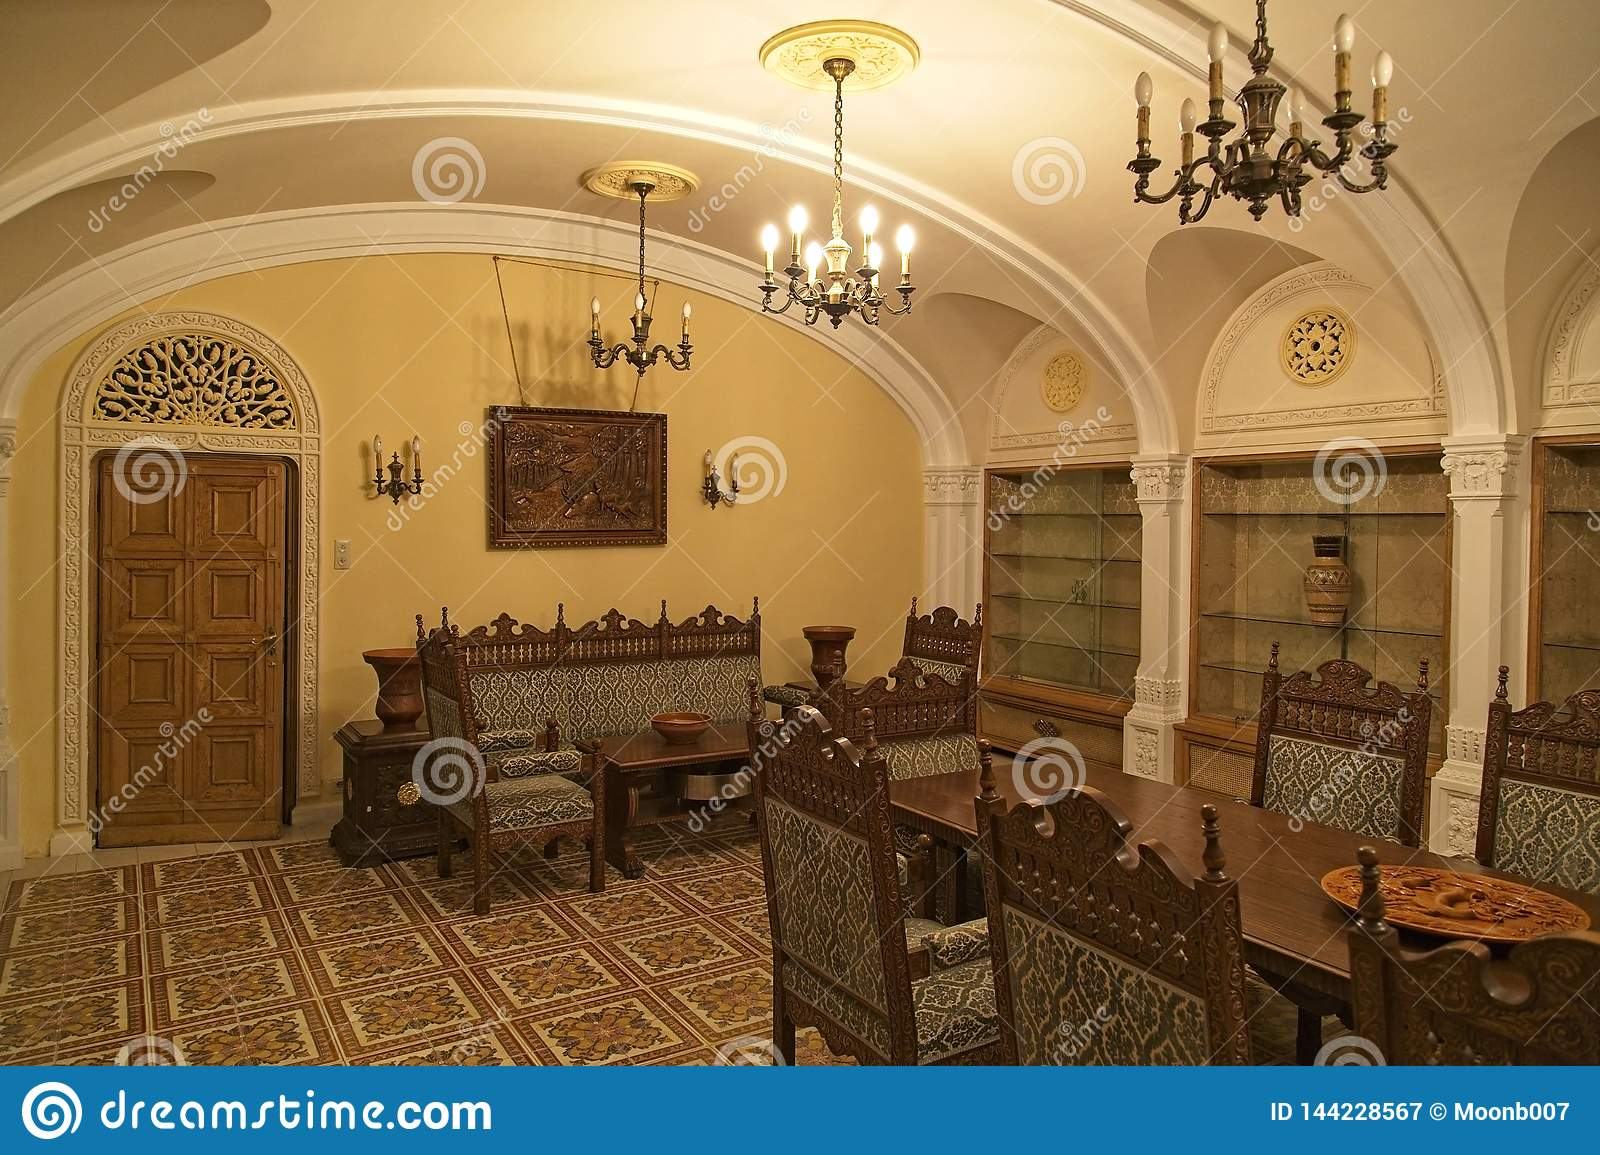 The Ceausescu Palace Dinning